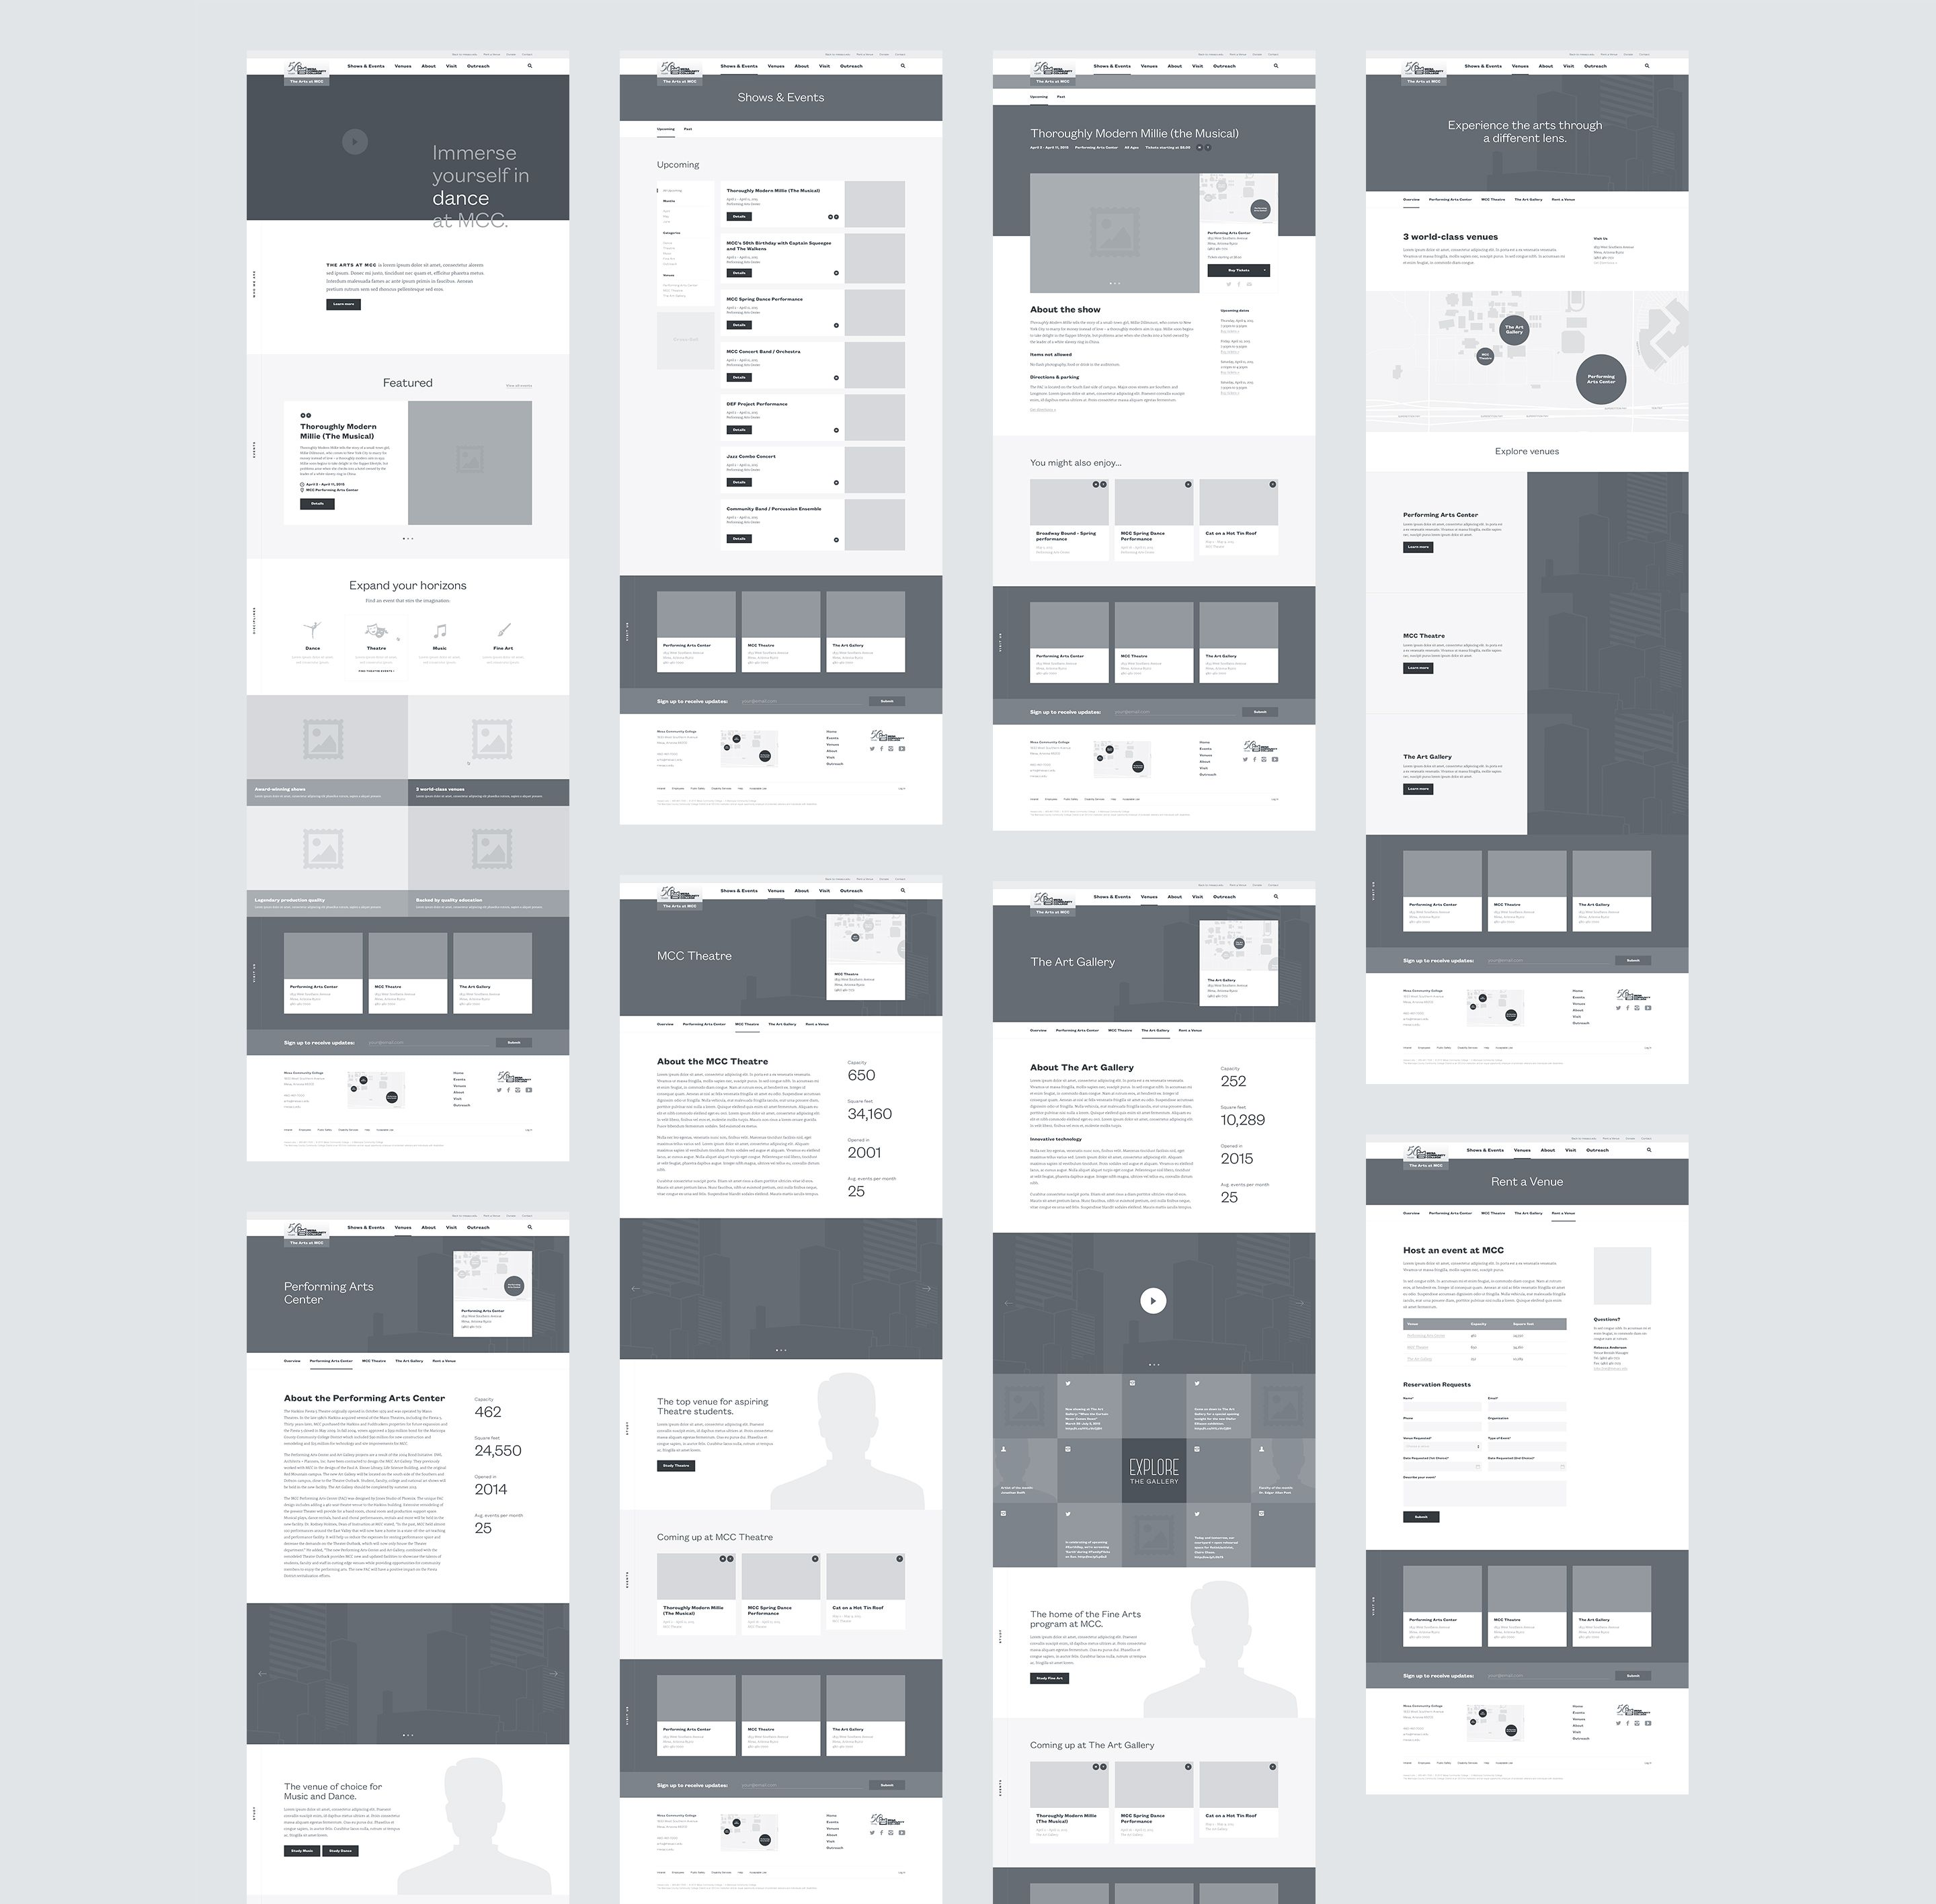 Website Wireframe: Pin By Doc Holladay On UX Design